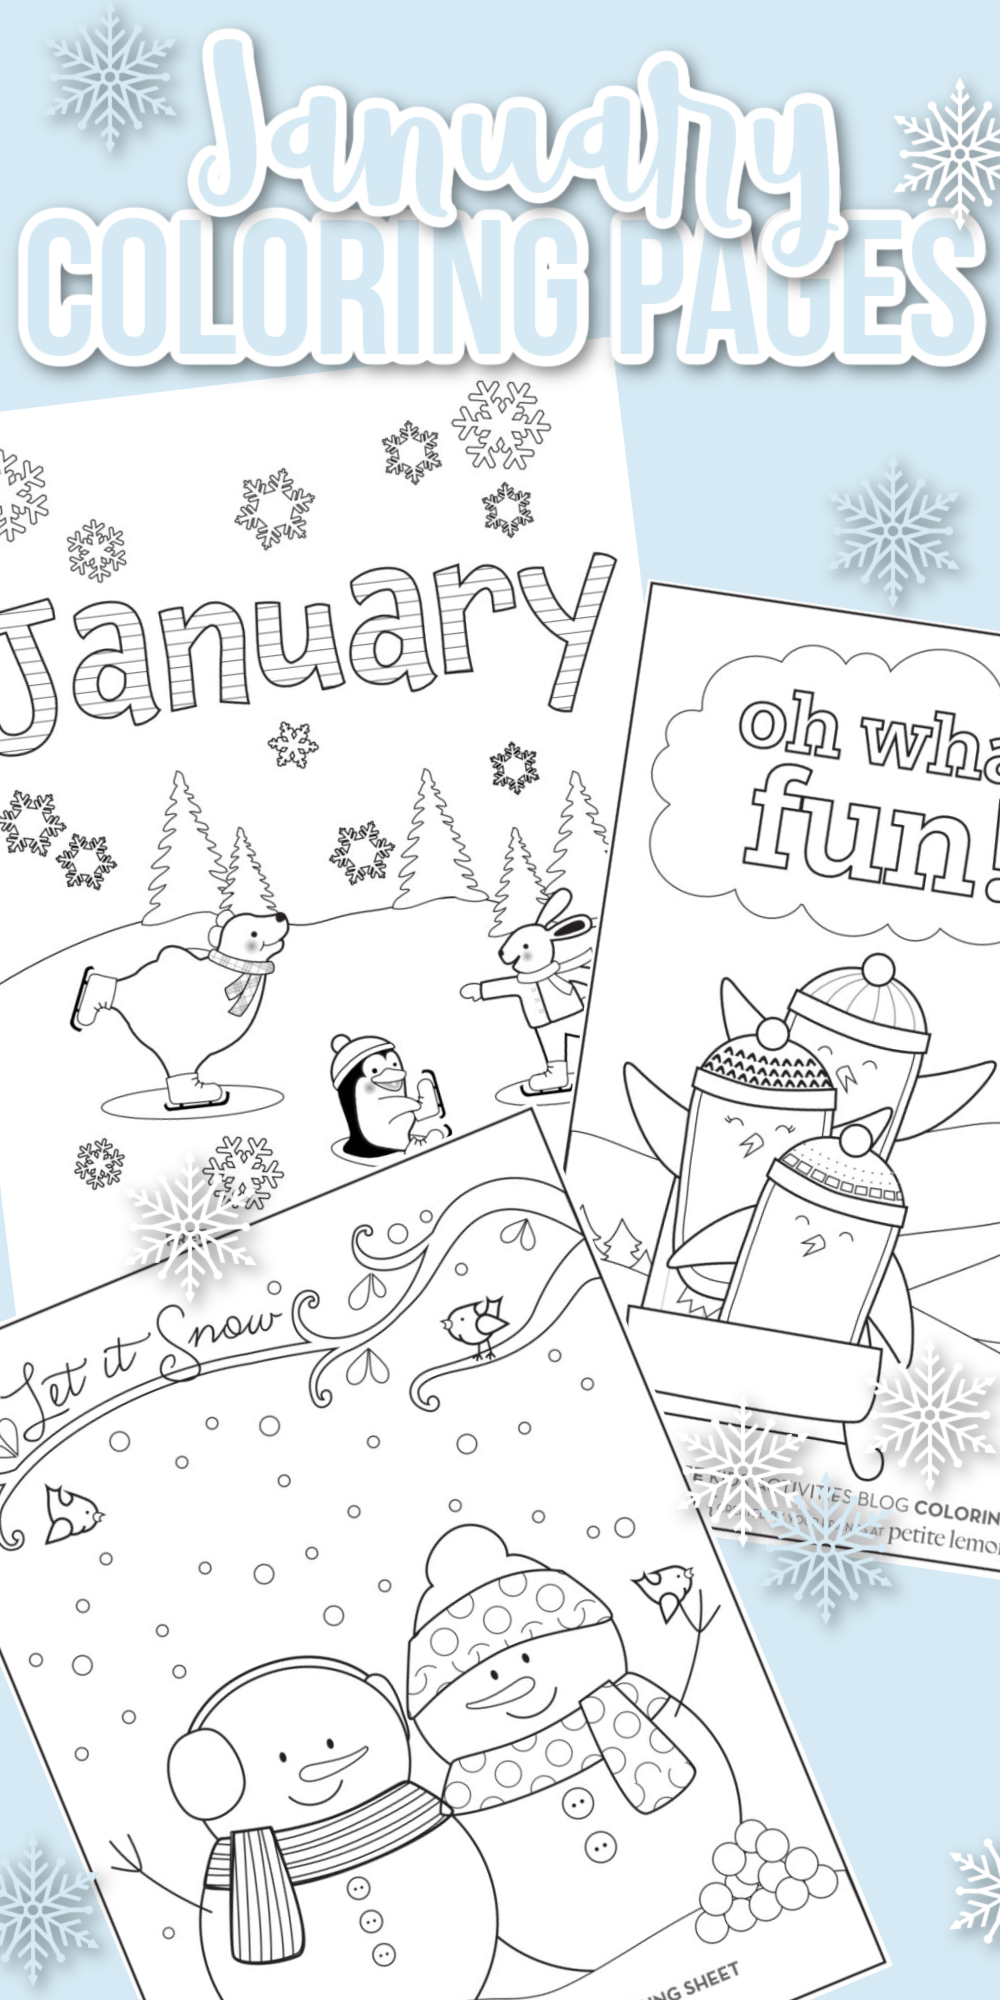 Happy 2021 Check Out These January Coloring Pages Kids Activities Blog In 2021 Kids Printable Coloring Pages Coloring Pages For Kids Coloring For Kids Free